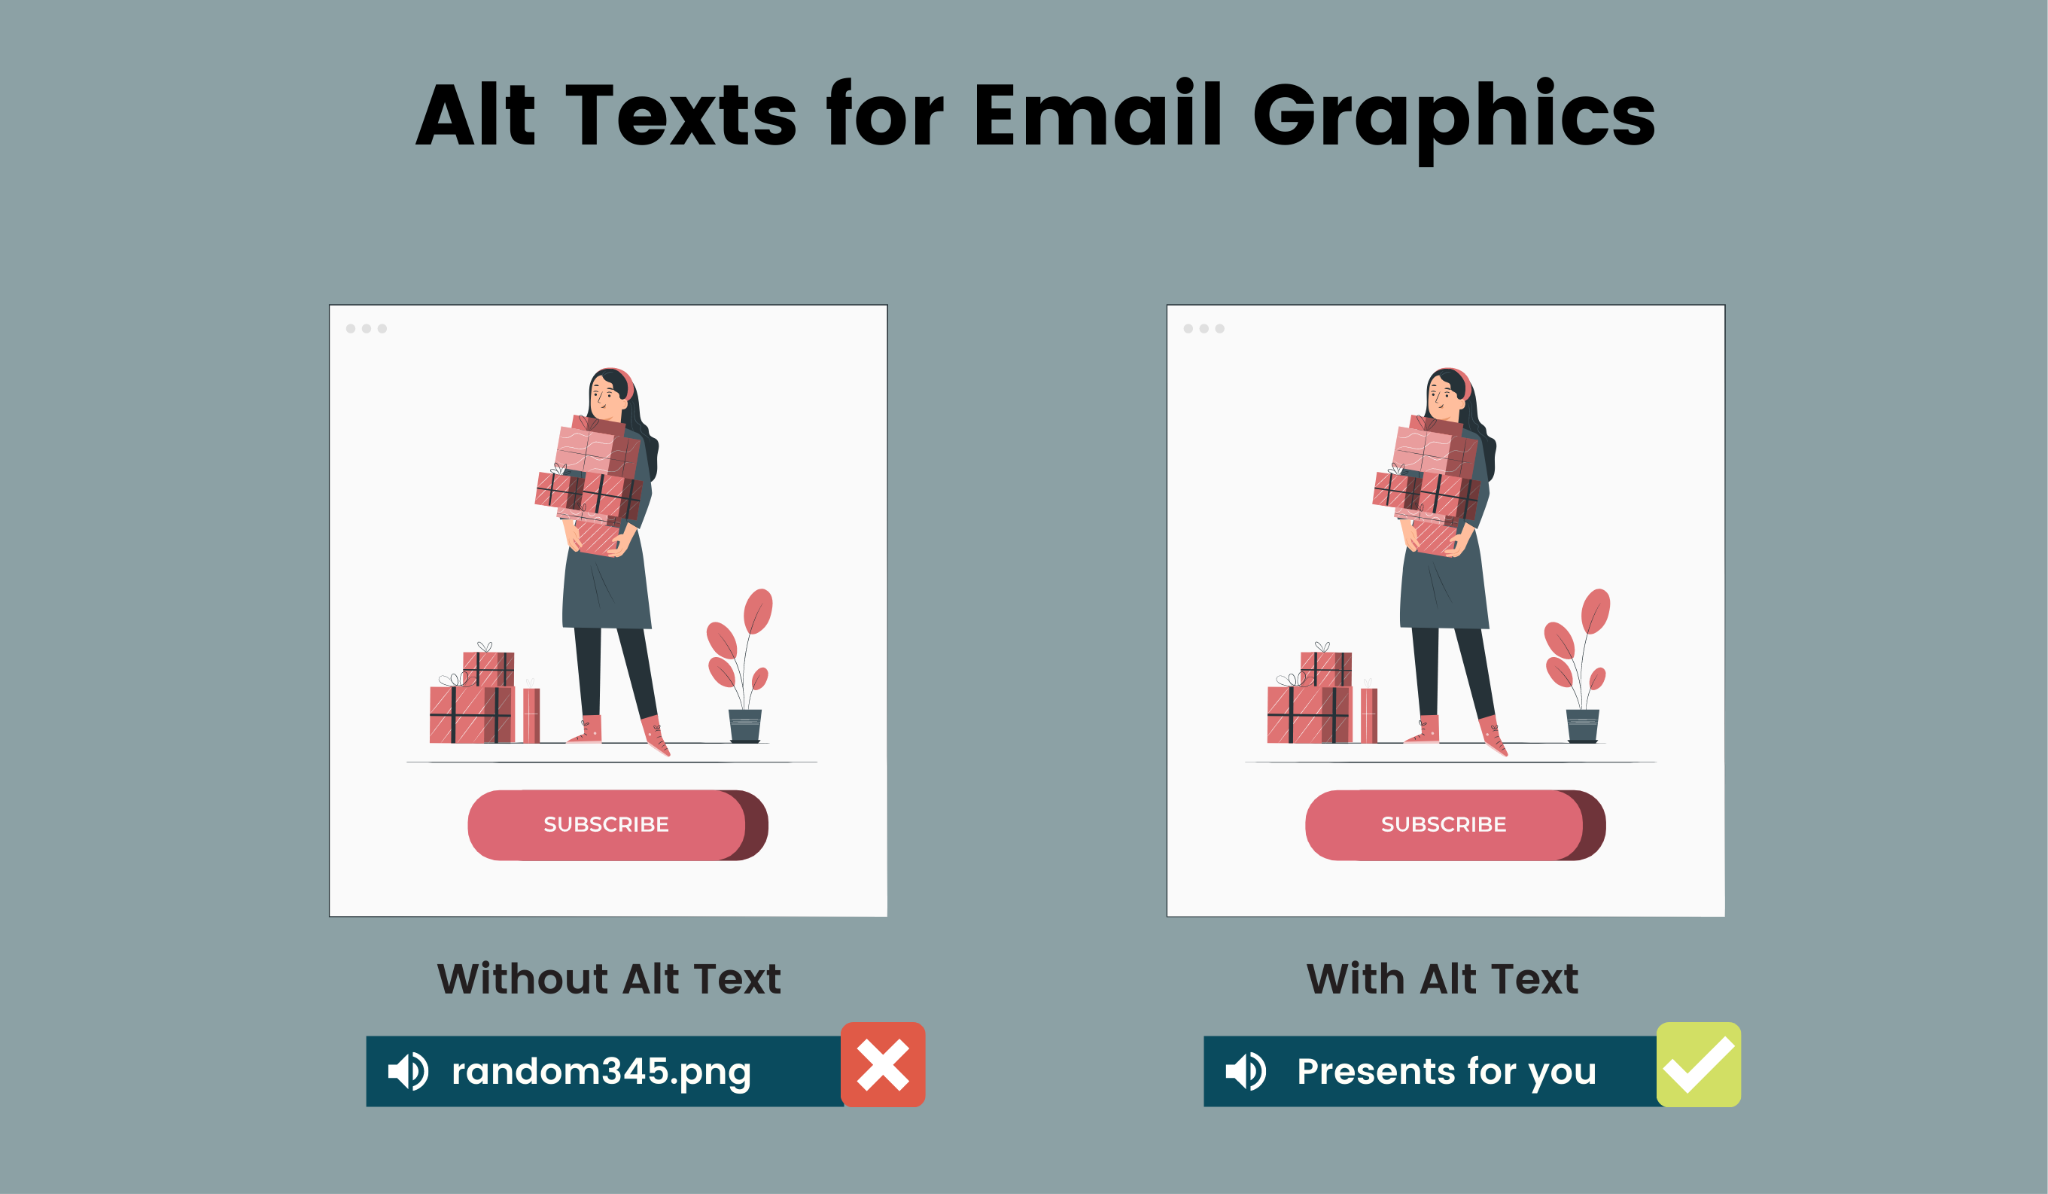 Email graphics must include alt texts